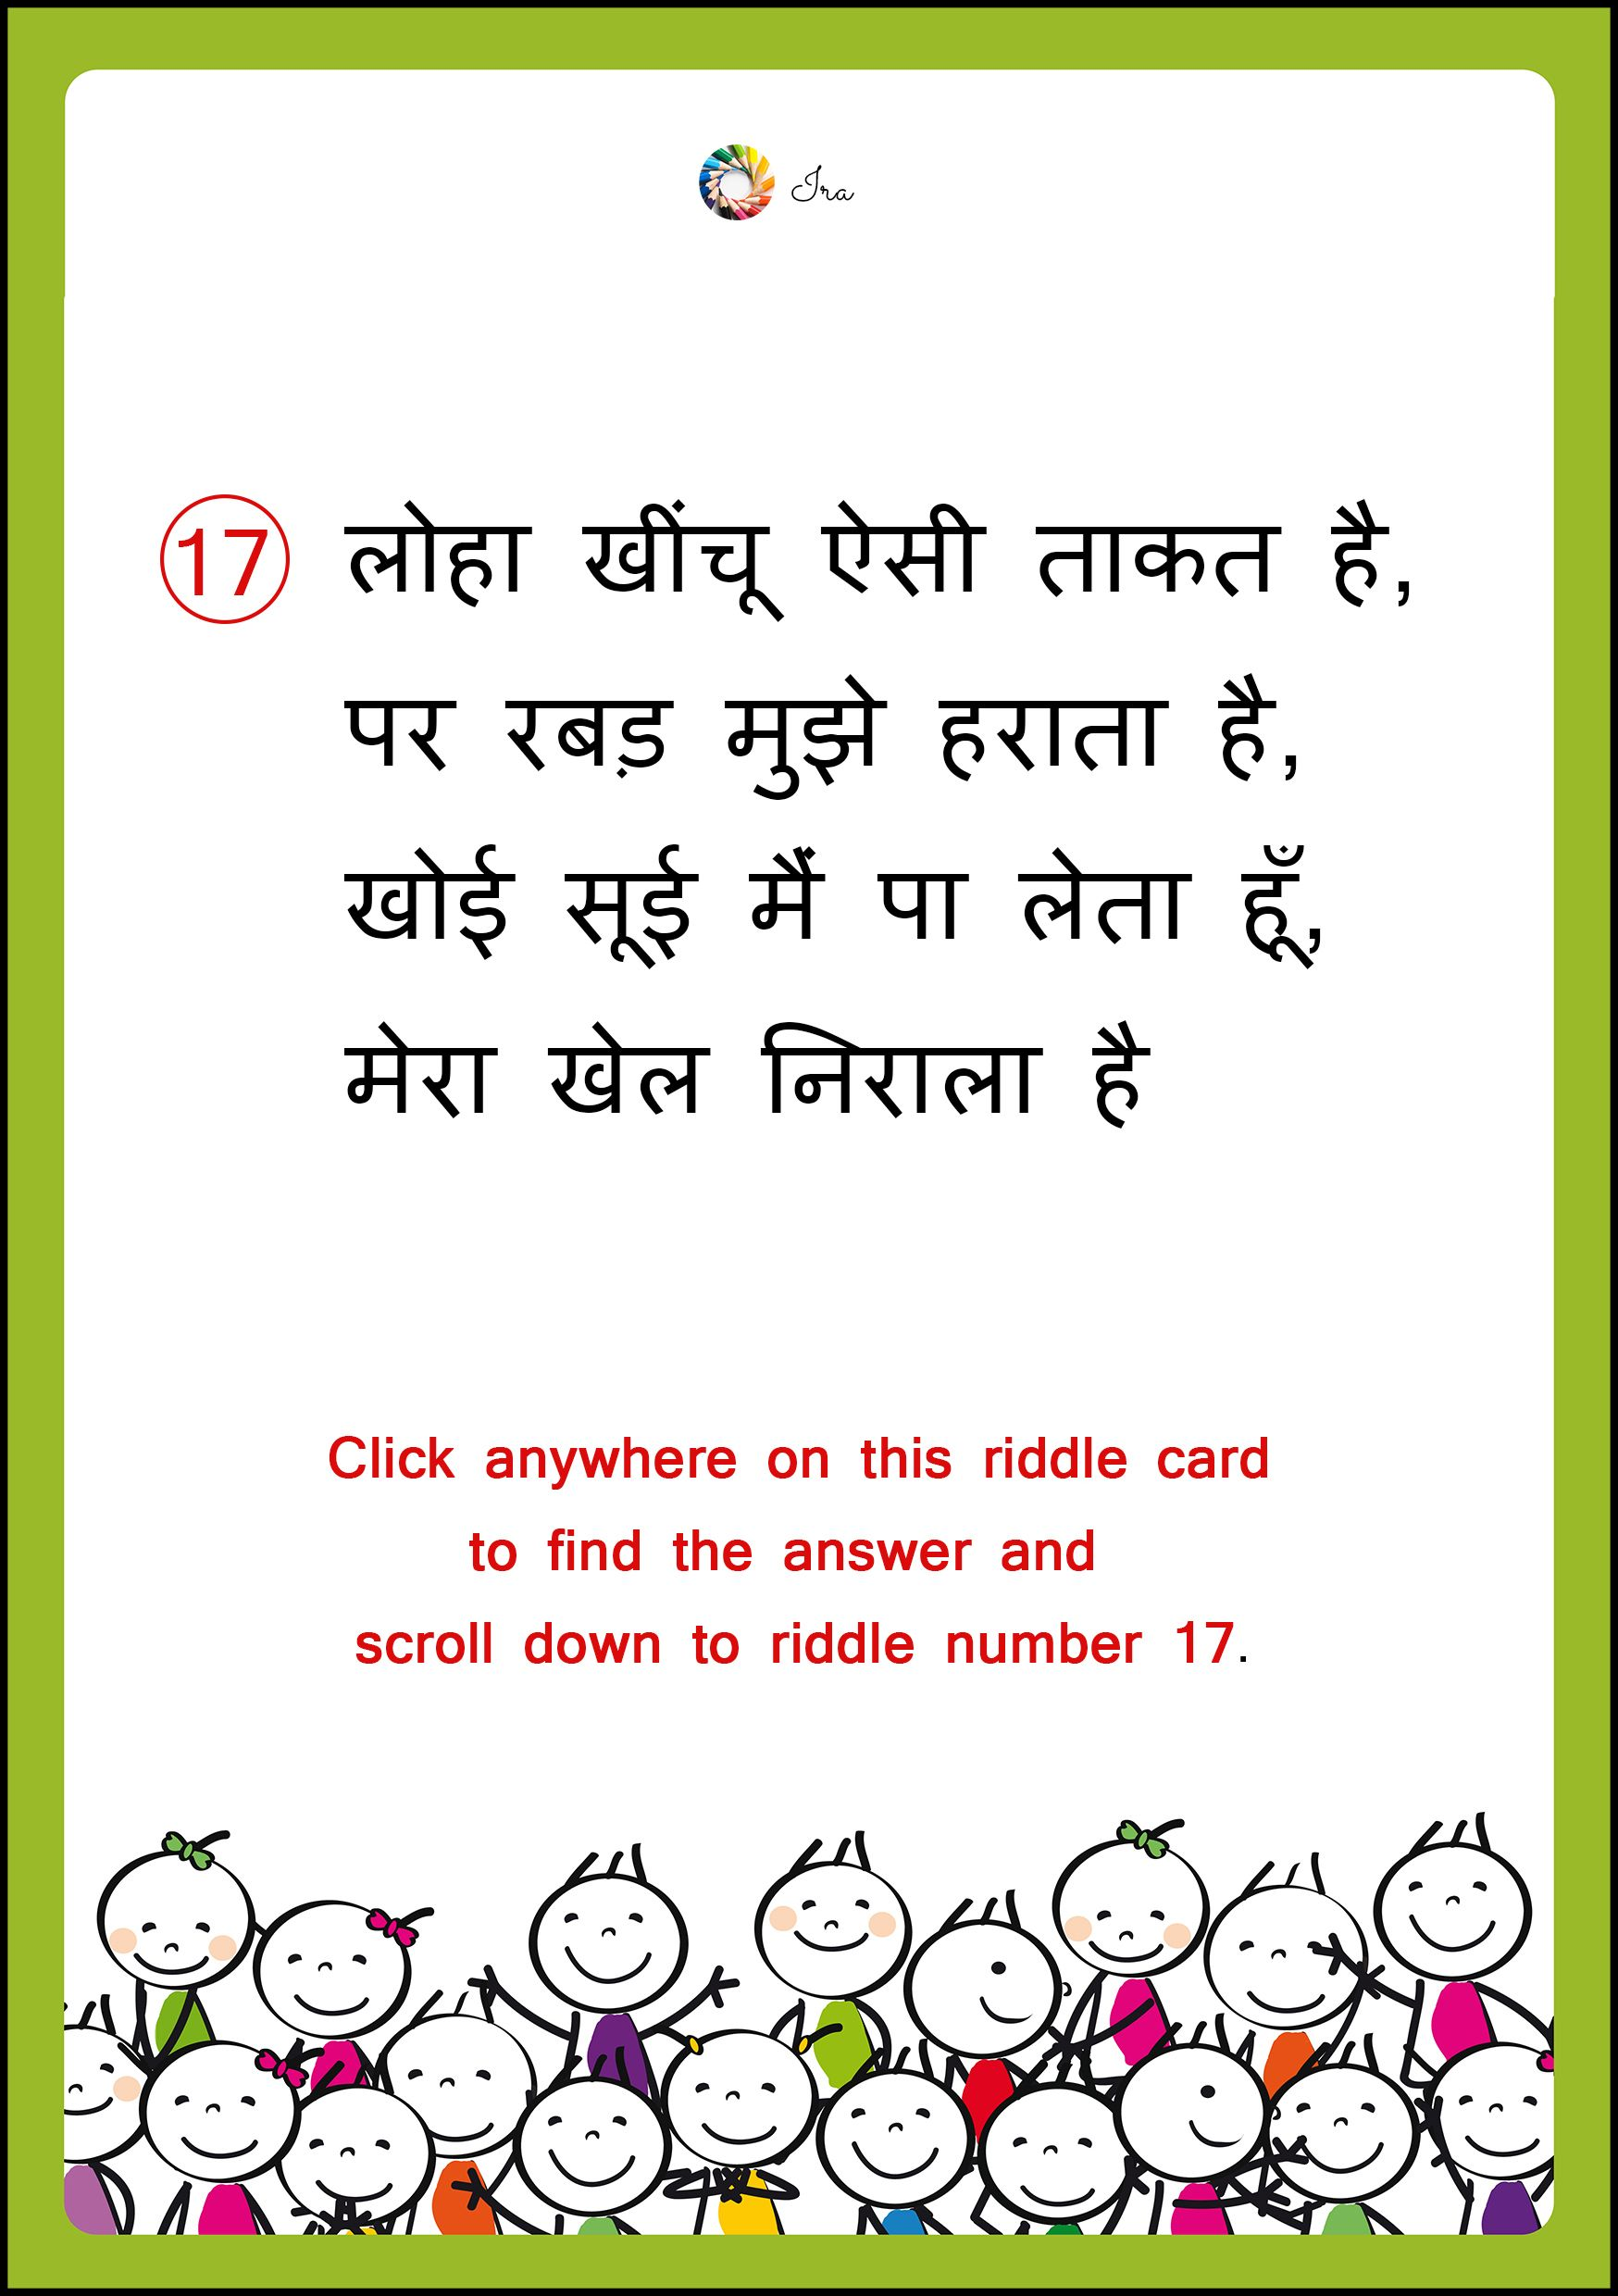 60 Rare Riddles in Hindi with Answers Riddles, Funny